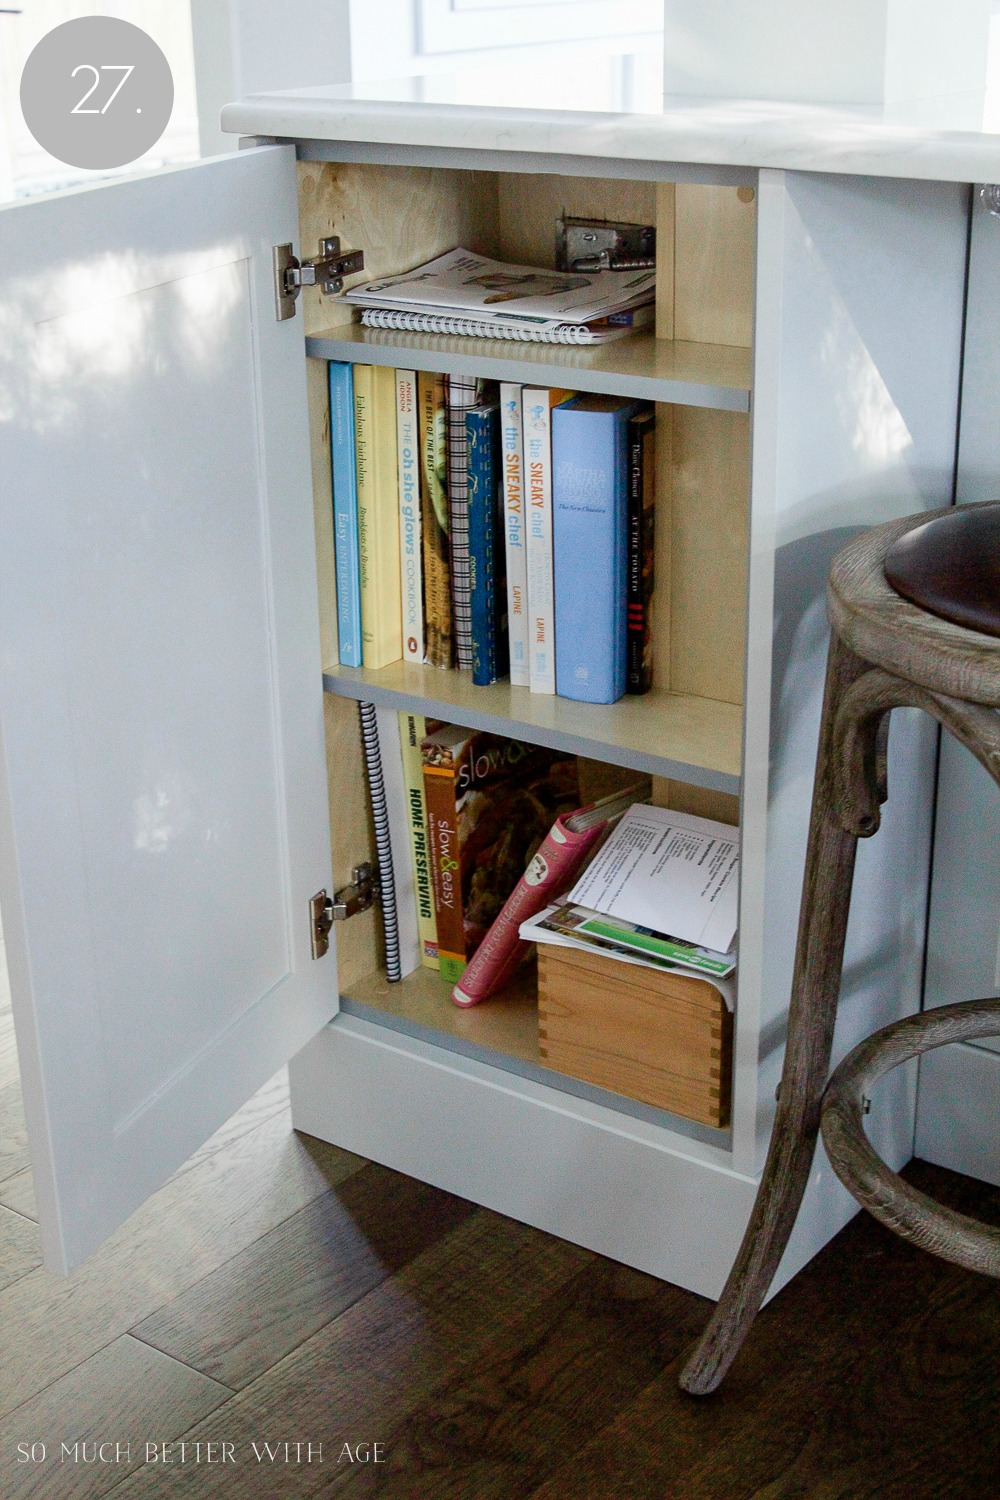 Kitchen cupboard and drawer organization / organized cookbooks - So Much Better With Age